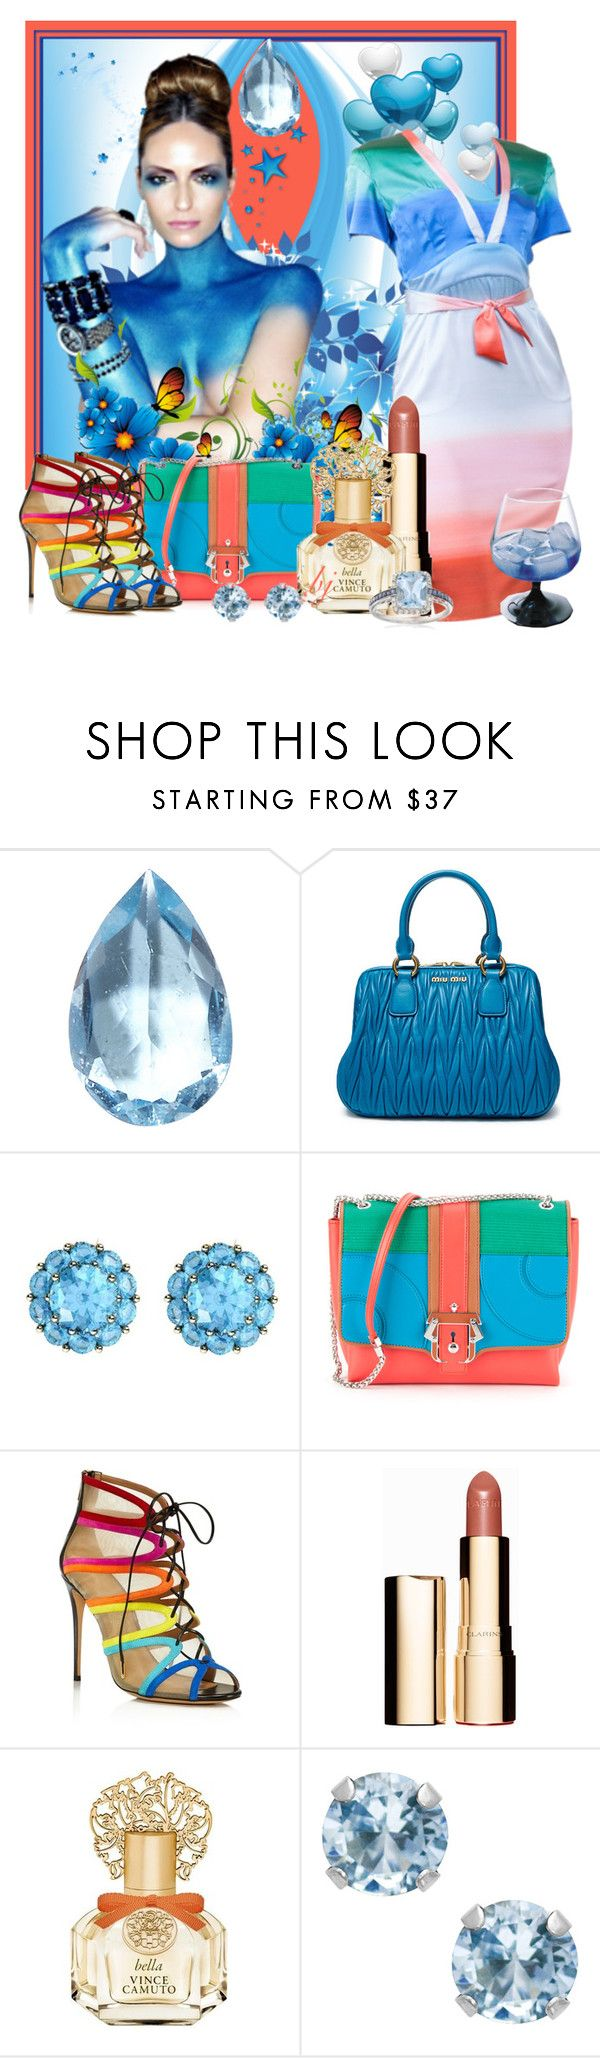 """""""Happy Birthday March 2016 took 2nd"""" by brenda-joyce ❤ liked on Polyvore featuring Loquet, Miu Miu, Color My Life, Wunderkind, Paula Cademartori, Salvatore Ferragamo, Clarins, Vince Camuto, Jewel Exclusive and Ross-Simons"""